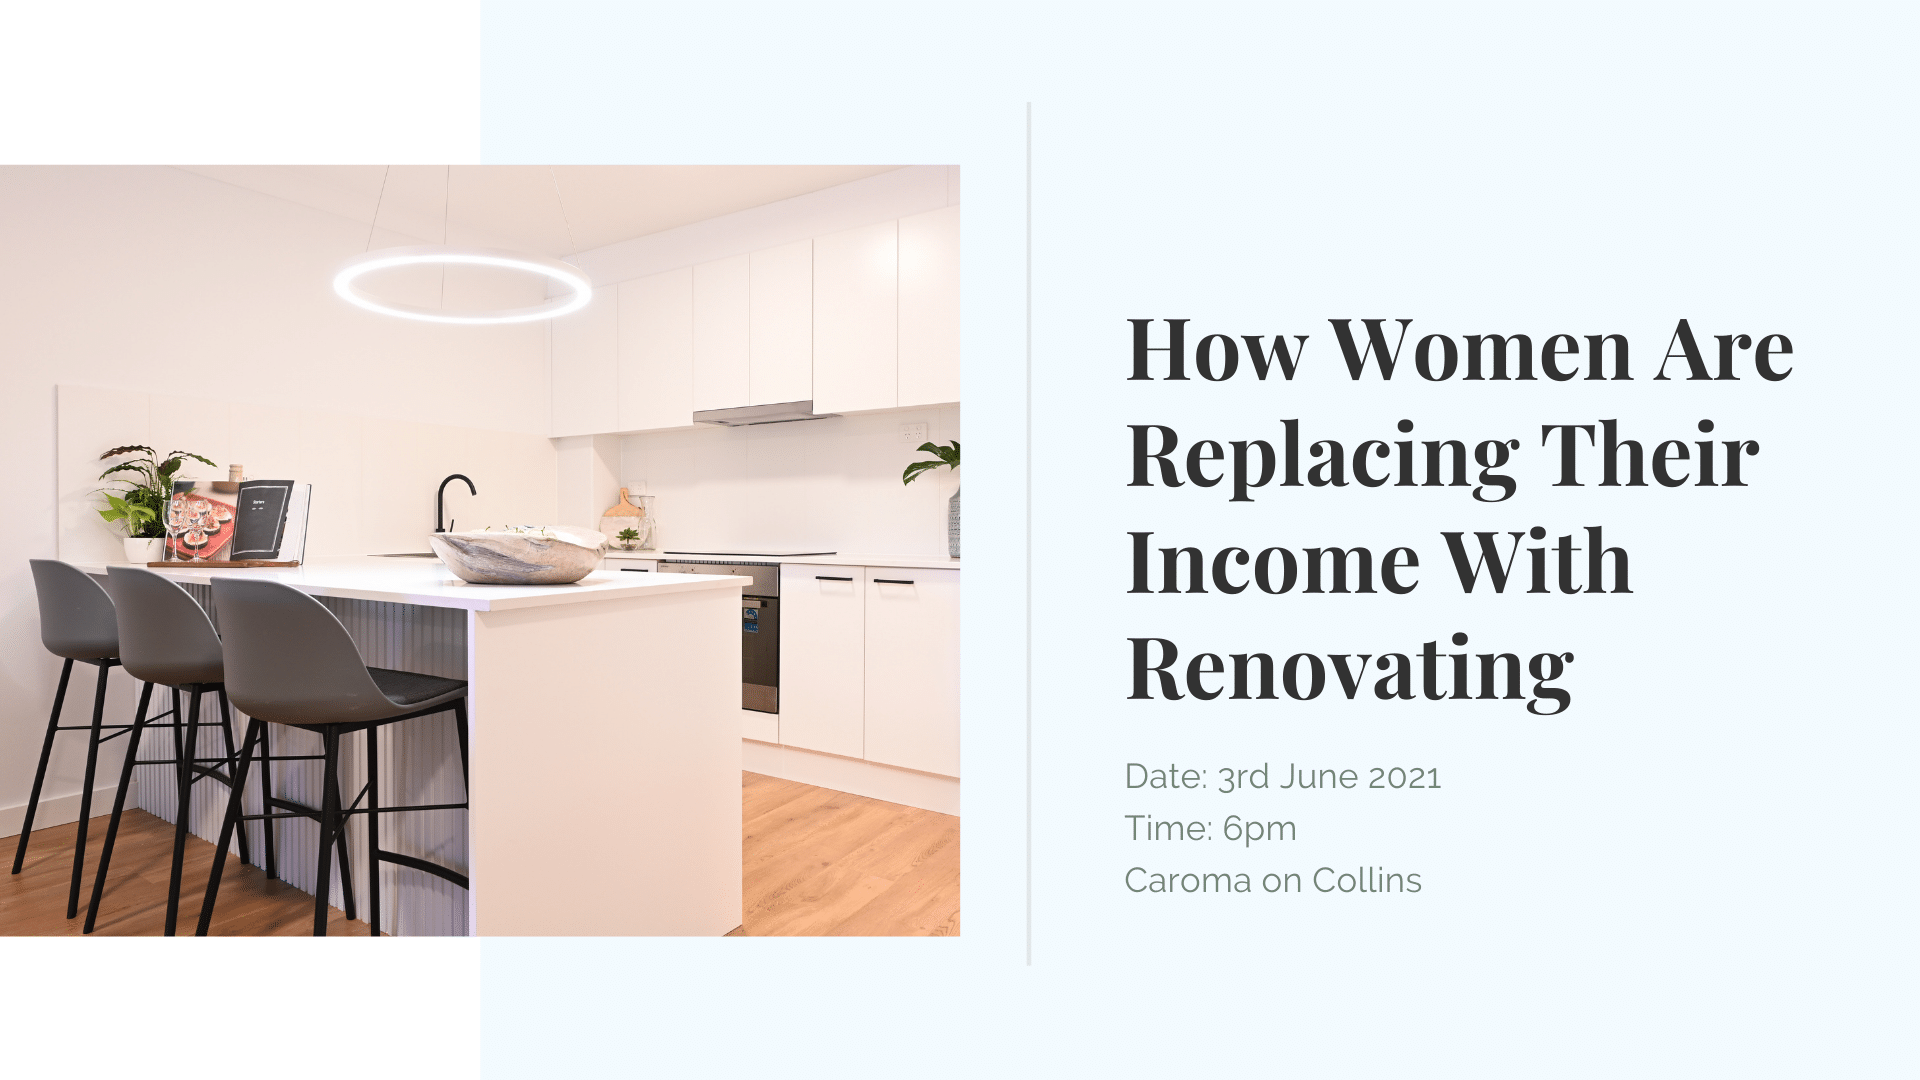 income with renovating